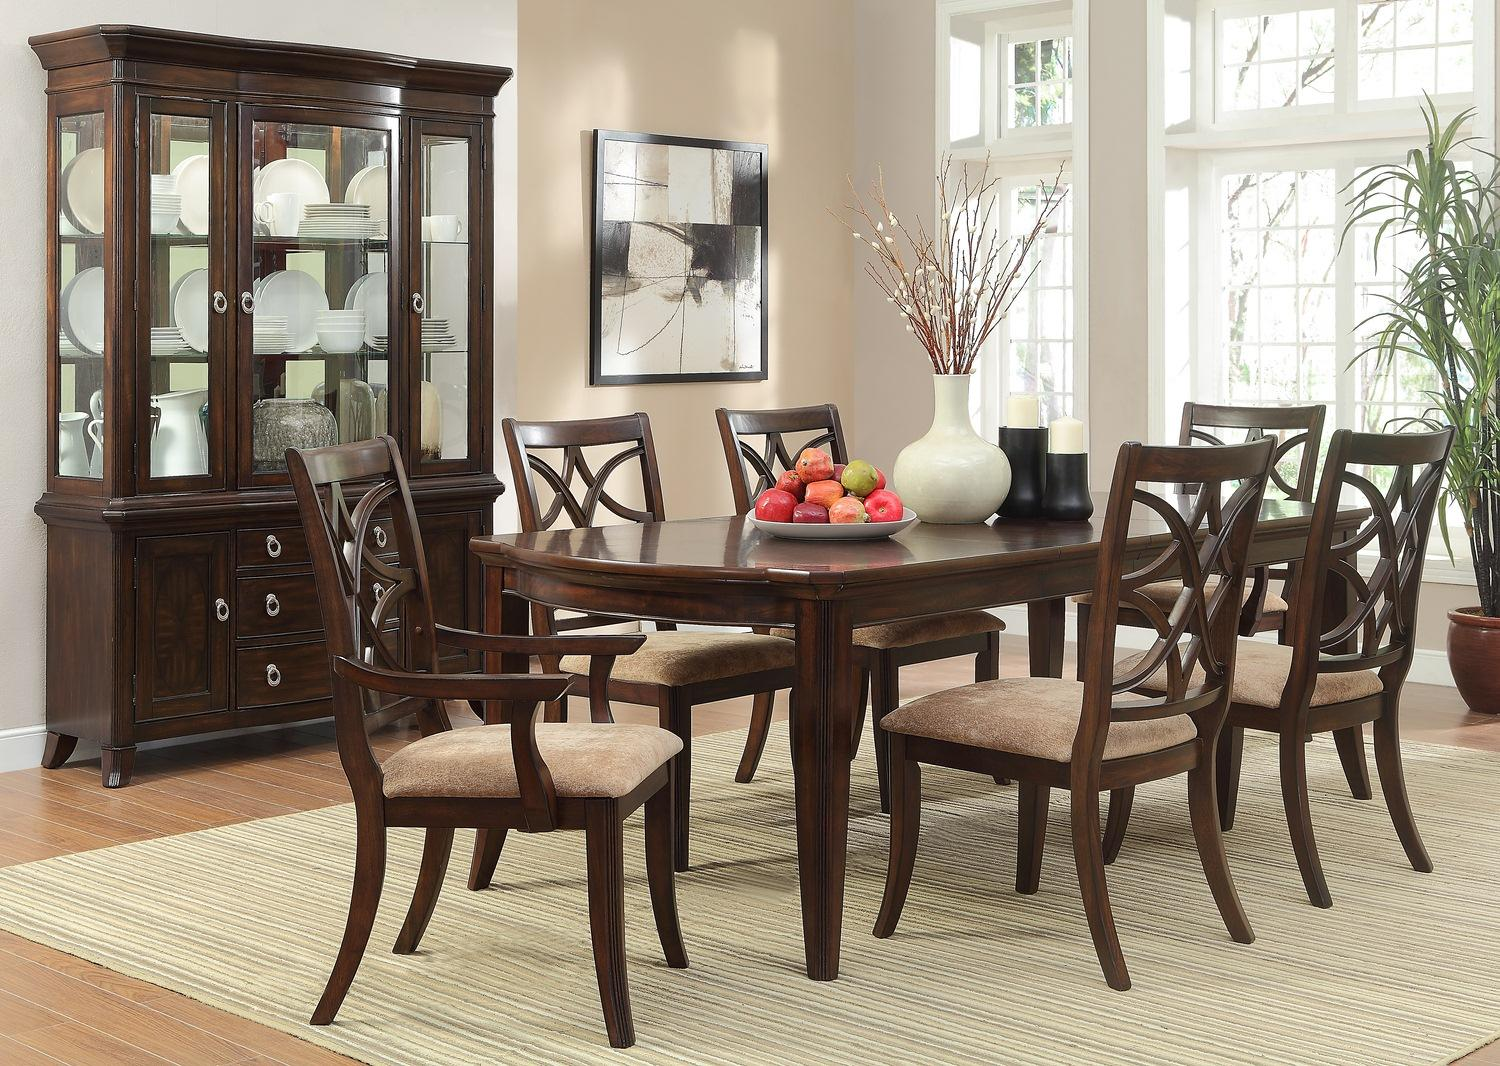 Homelegance Keegan 7 Piece Dining Set With Rectangular Table   Wayside  Furniture   Dining 7 (or More) Piece Set